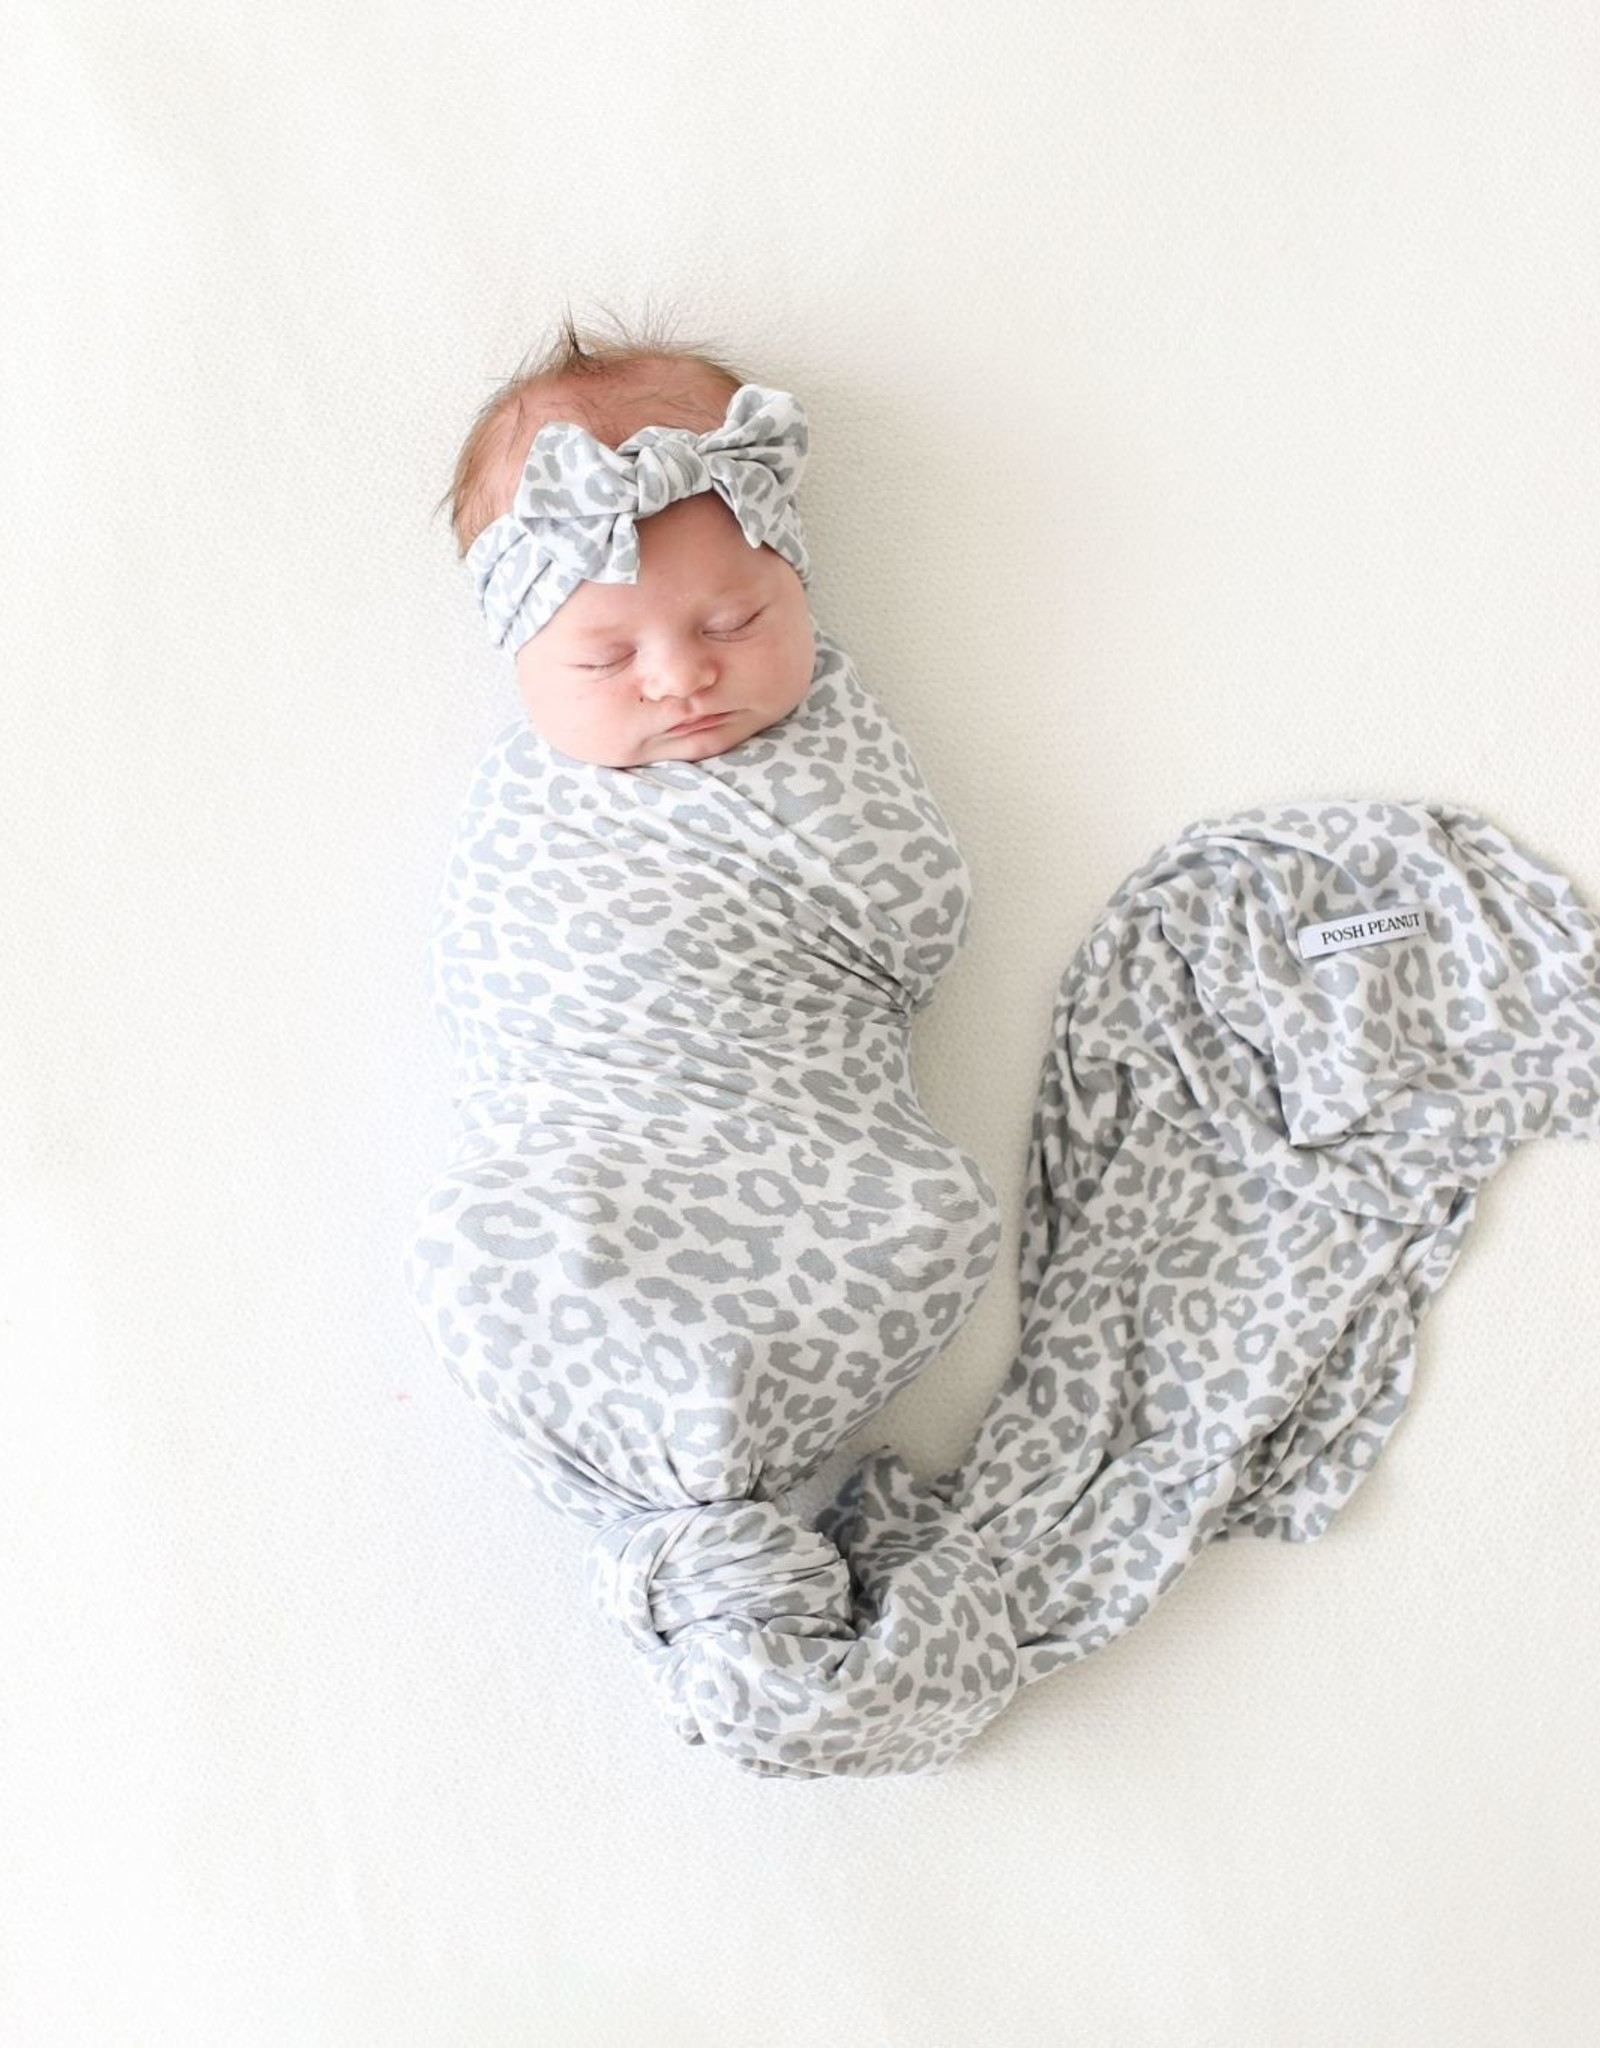 POSH PEANUT MINKA - INFANT SWADDLE AND HEADWRAP SET